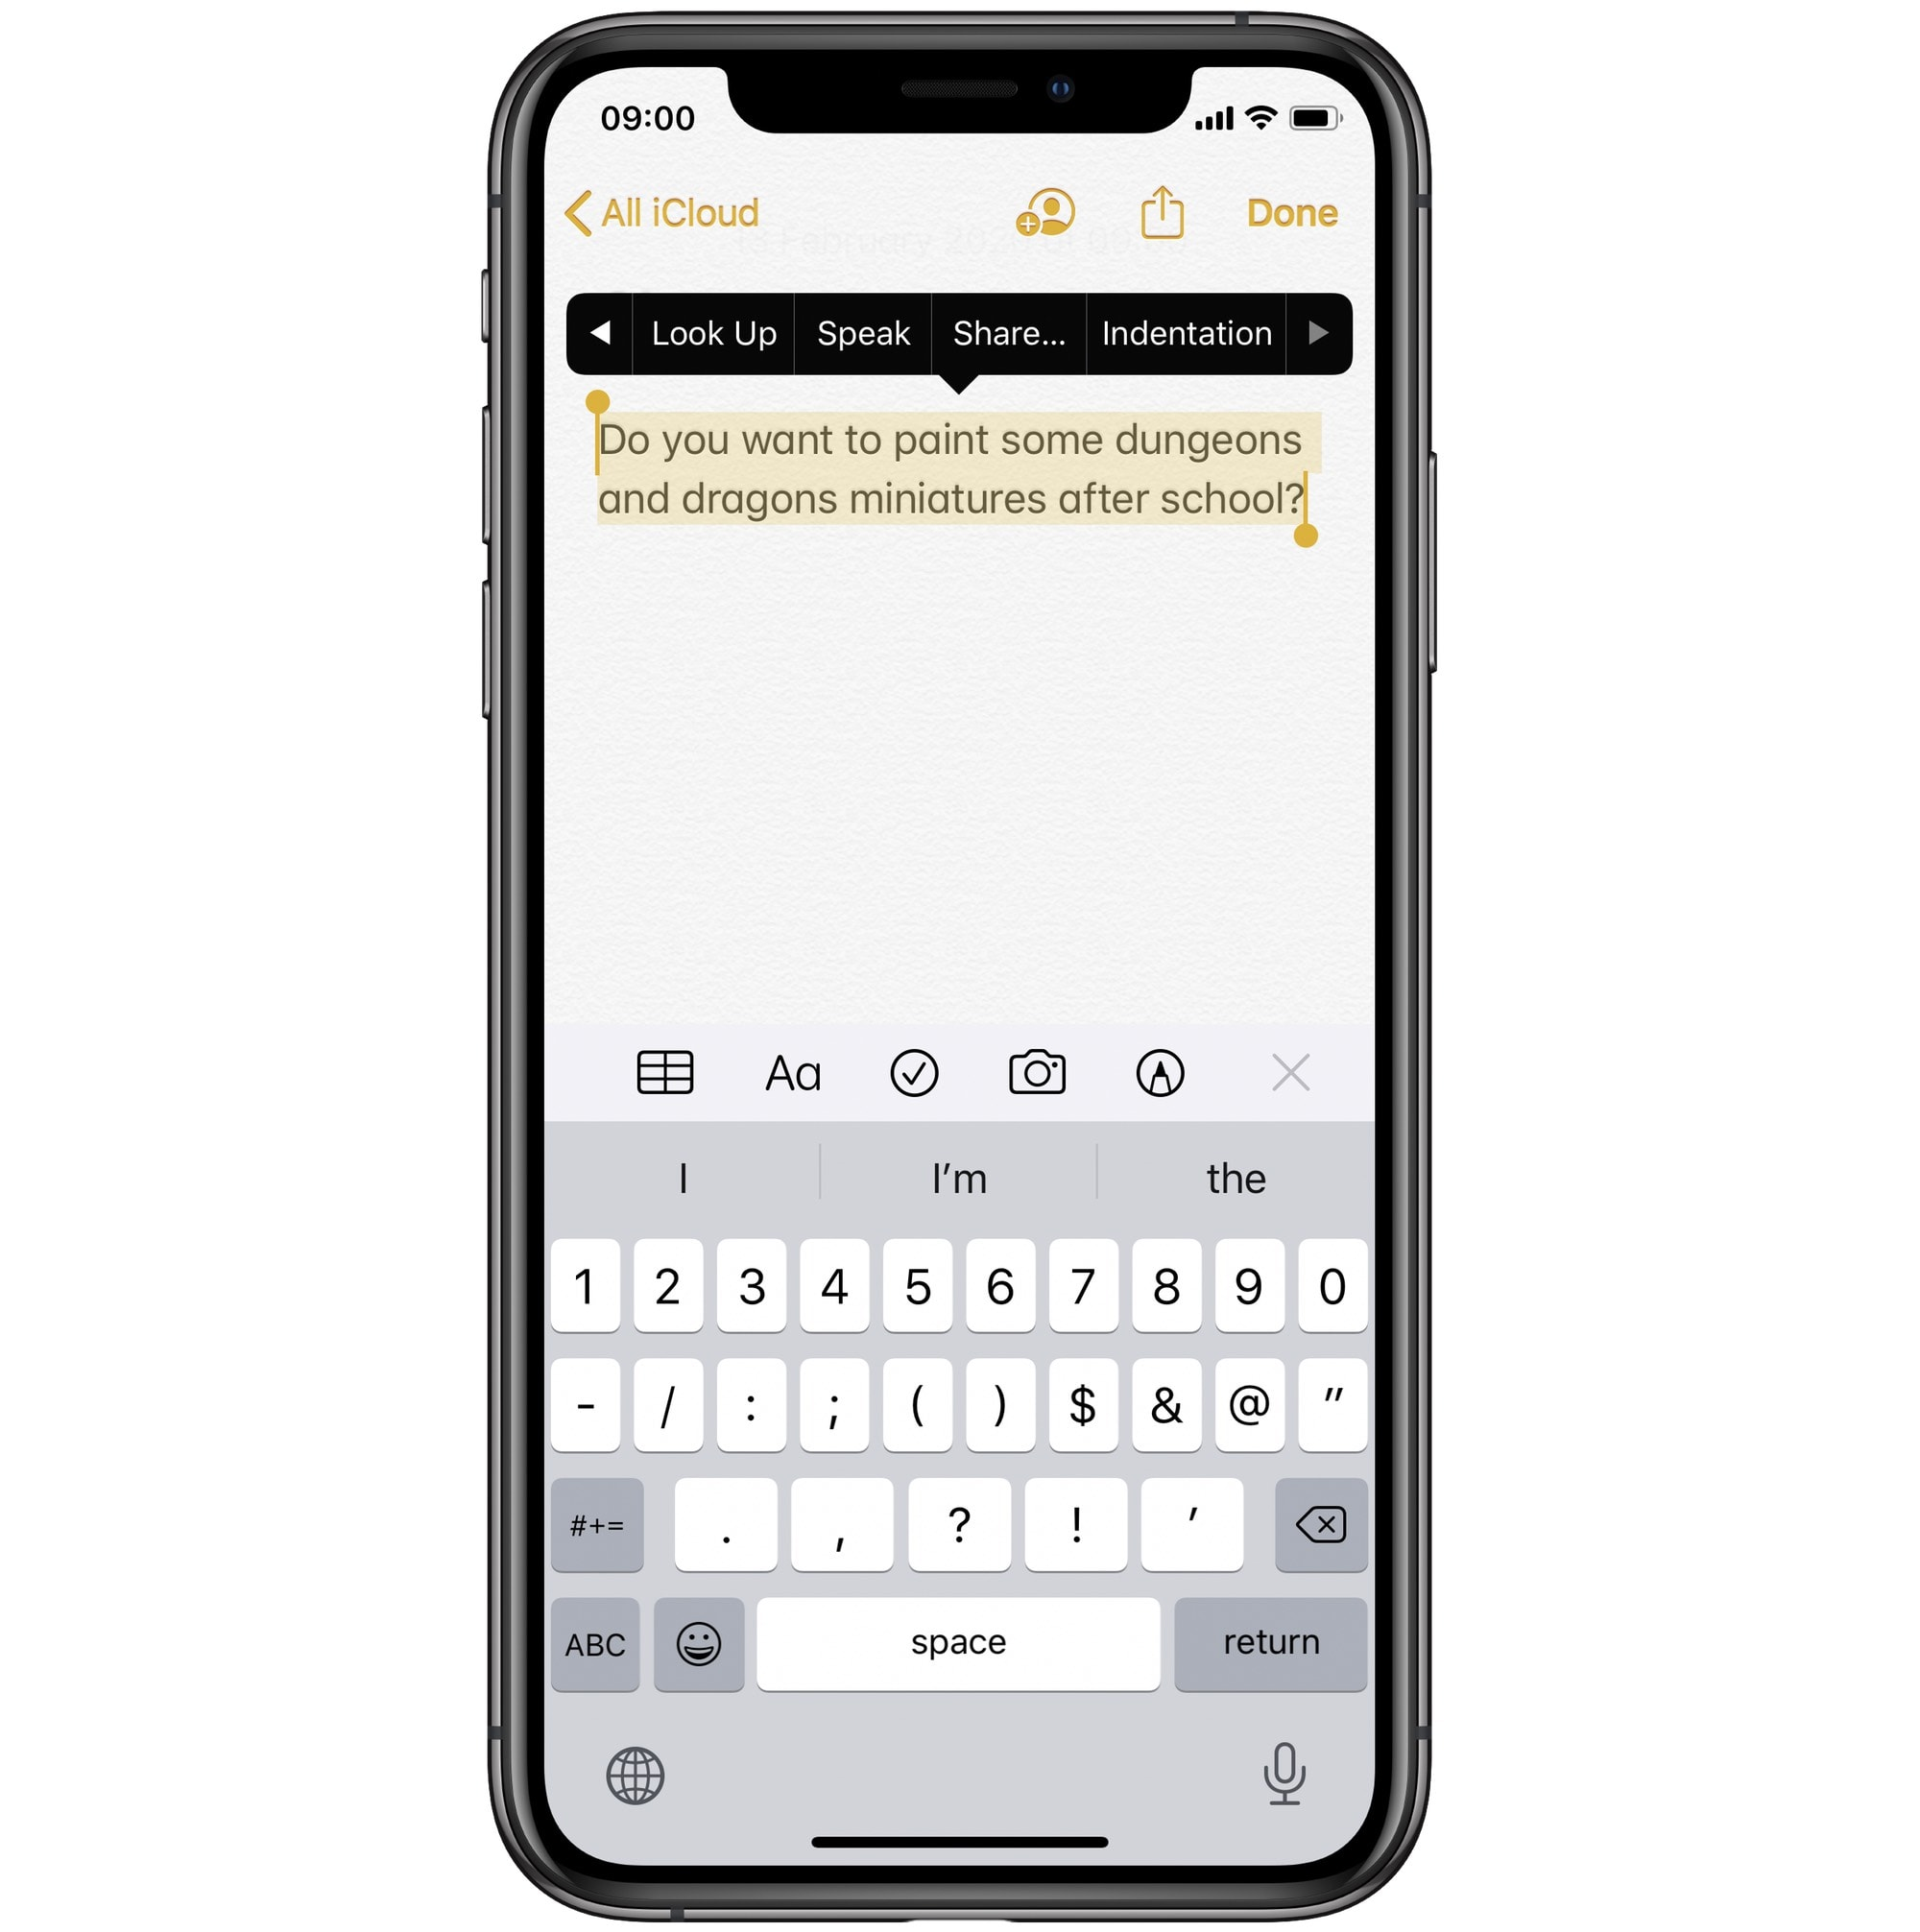 Speak any text, from anywhere on your iPhone.